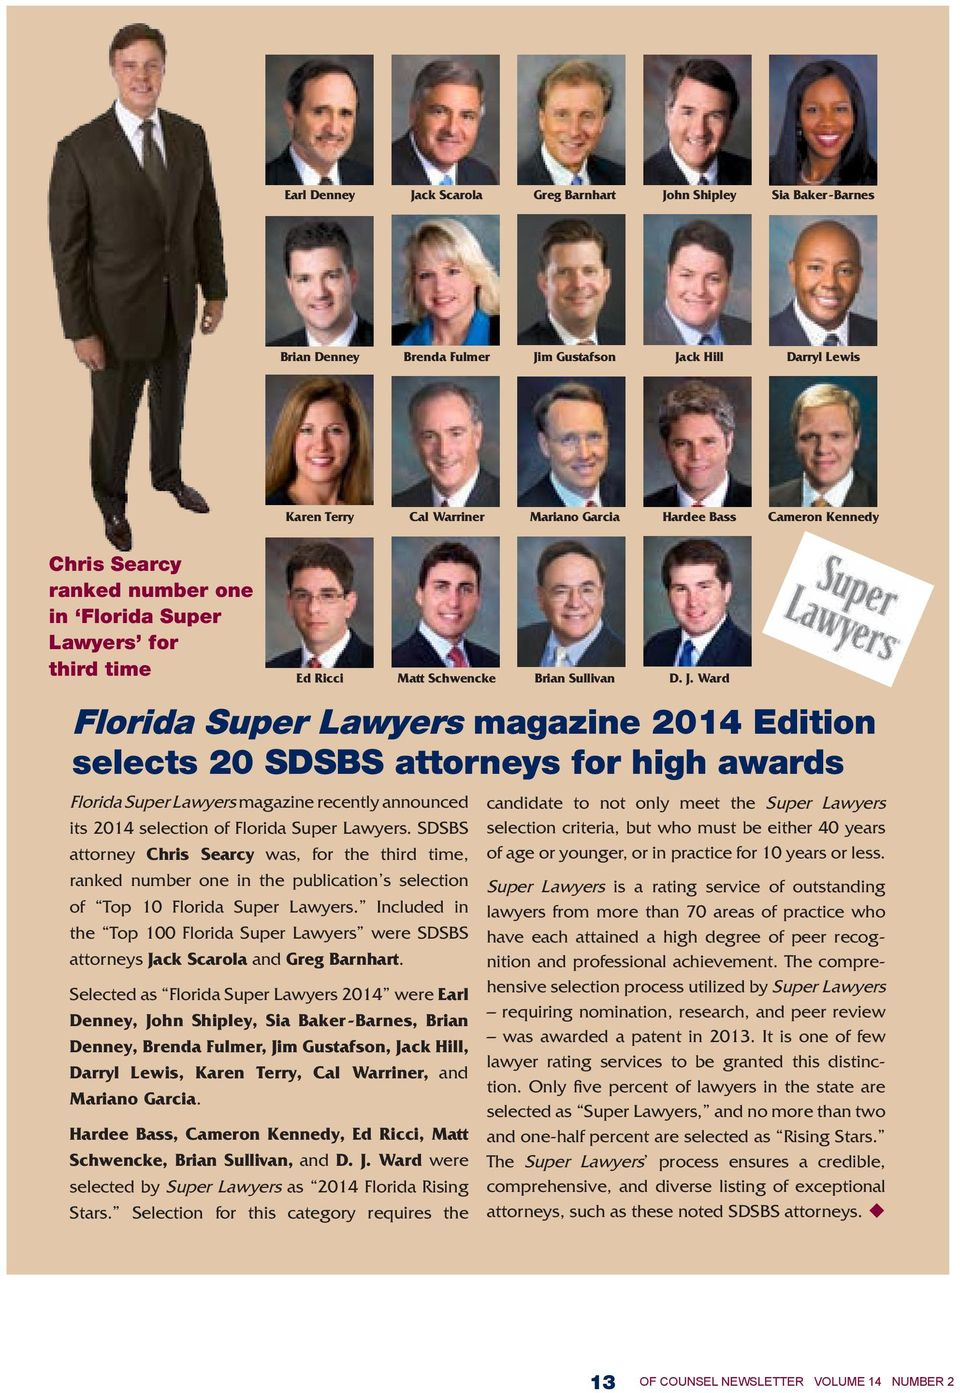 Super Lawyers magazine recently announced its 2014 selection of Florida Super Lawyers.